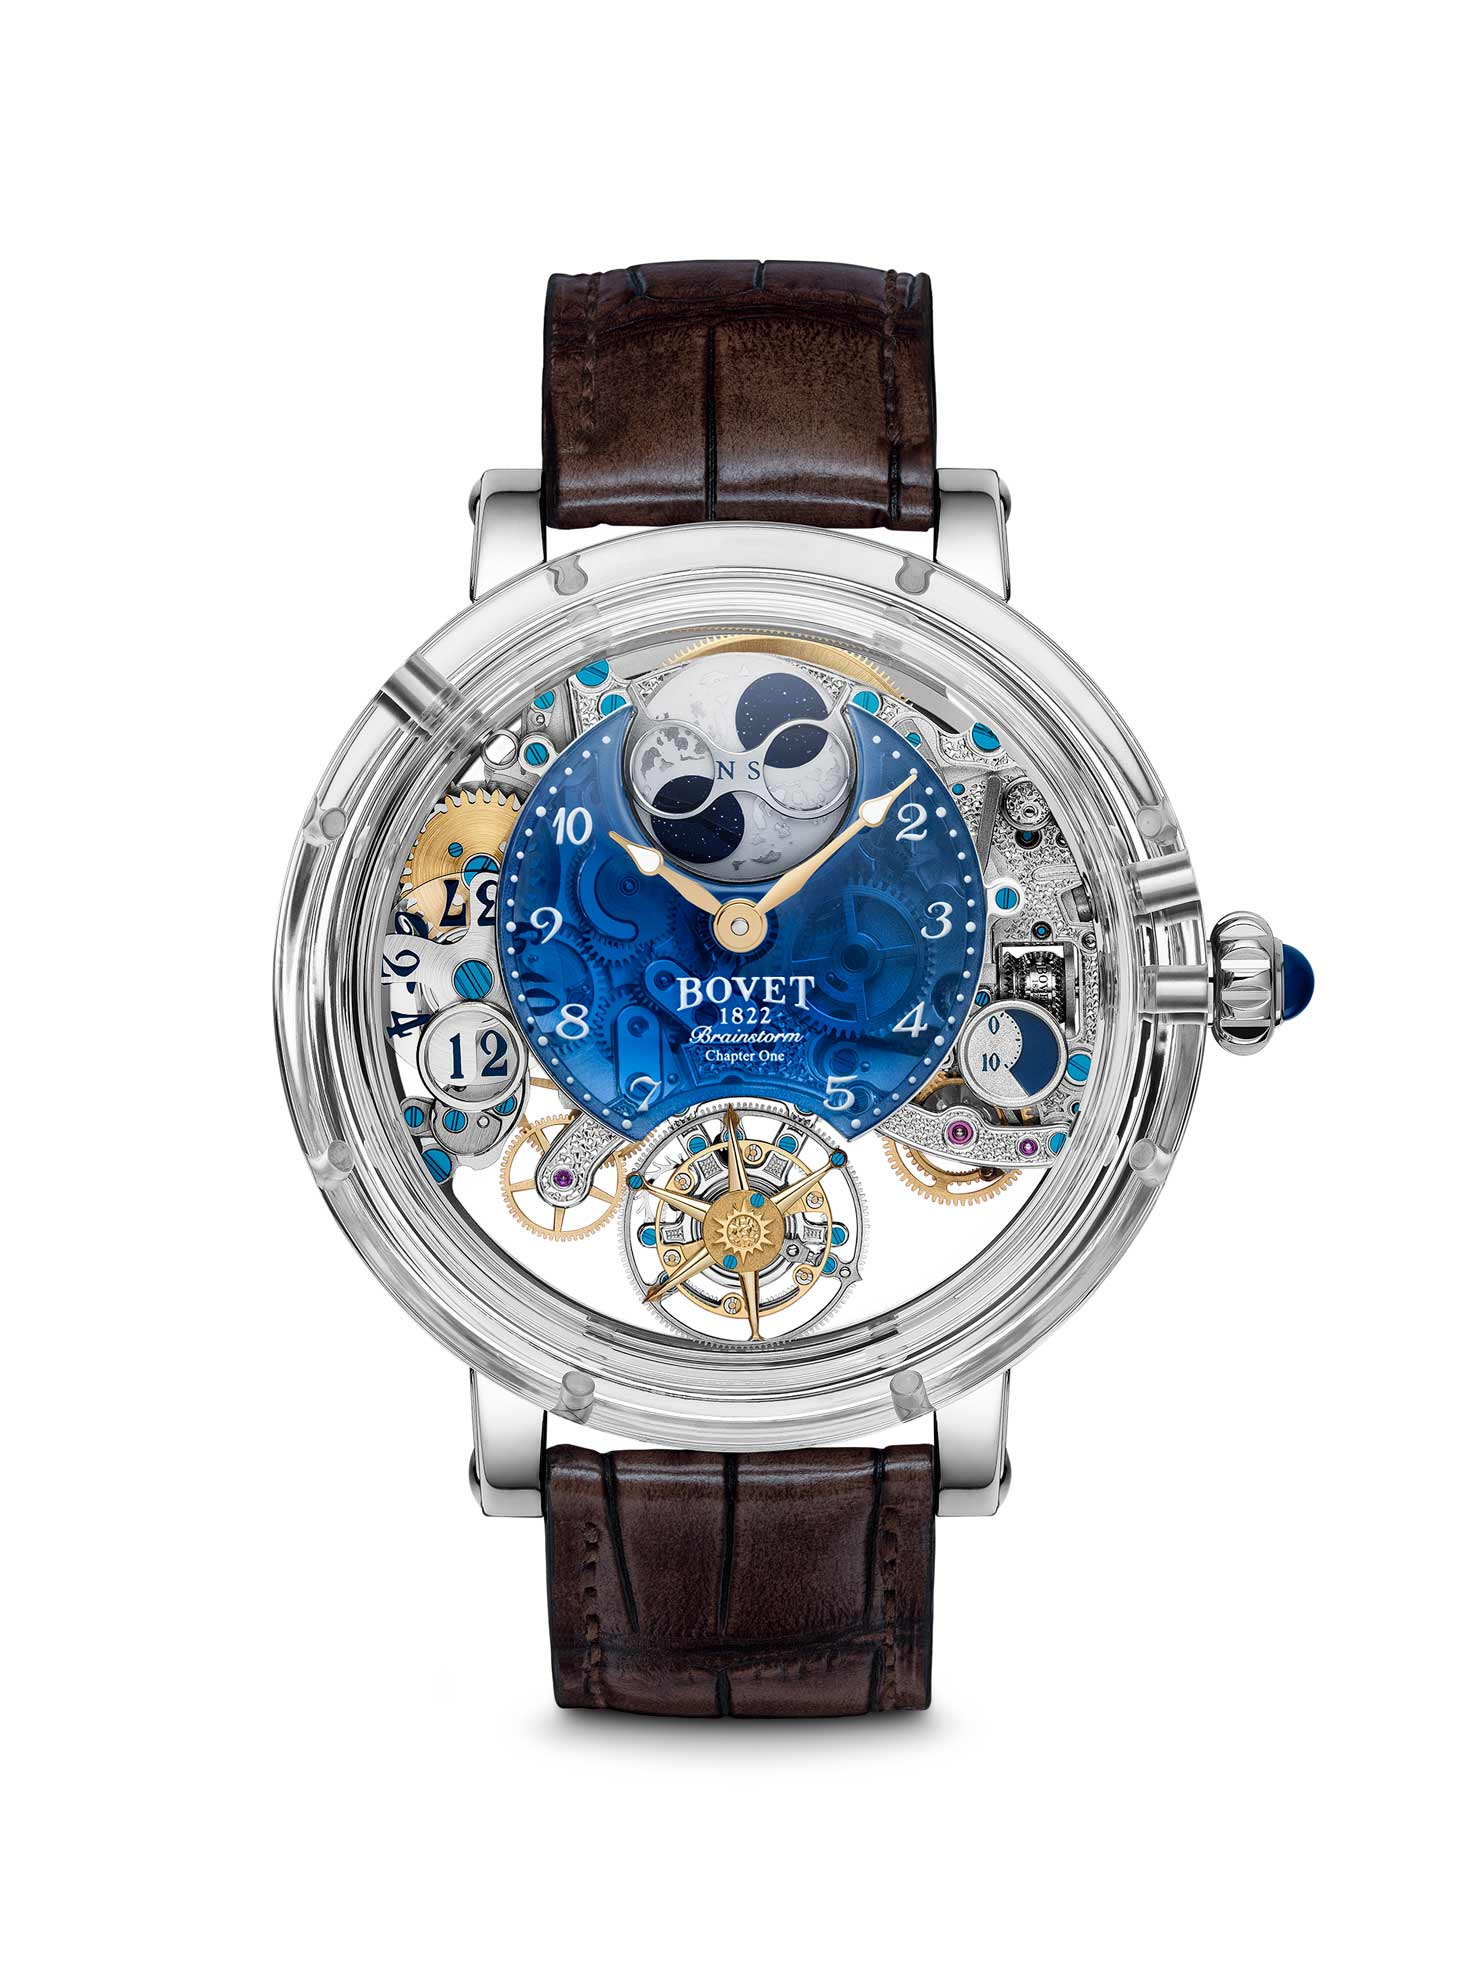 Bovet brown and blue